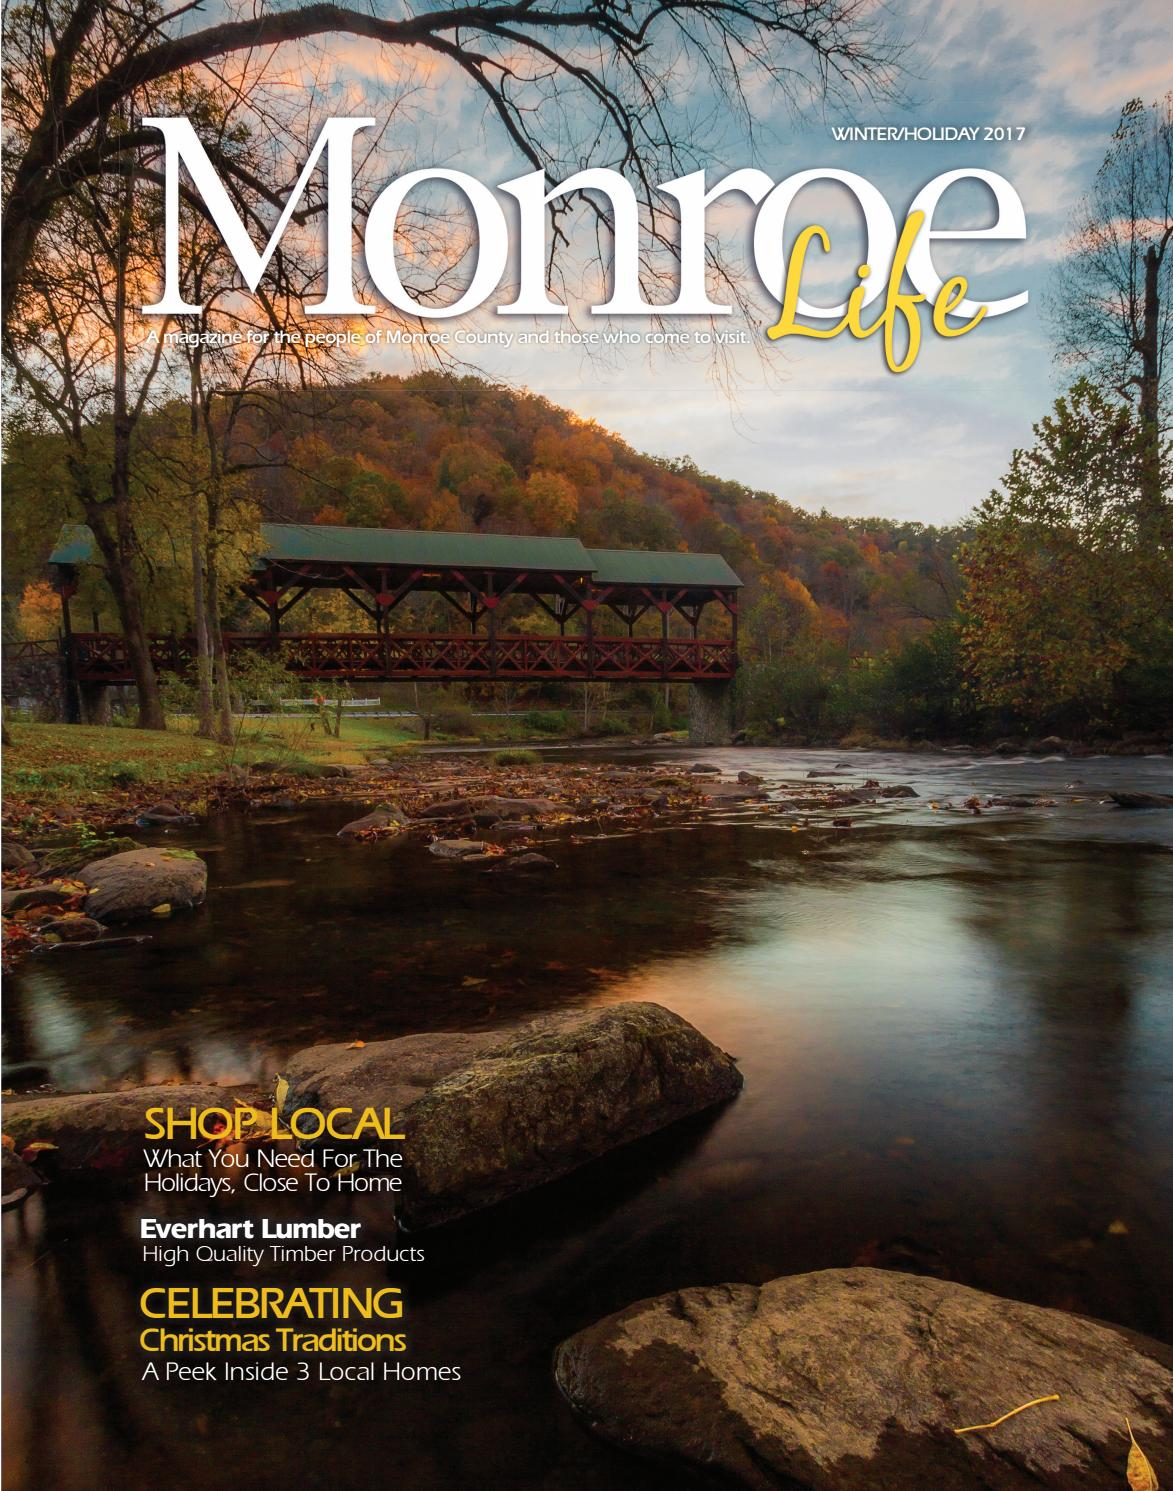 Monroe Life Winter Holiday 2017 By Bingham Group Issuu